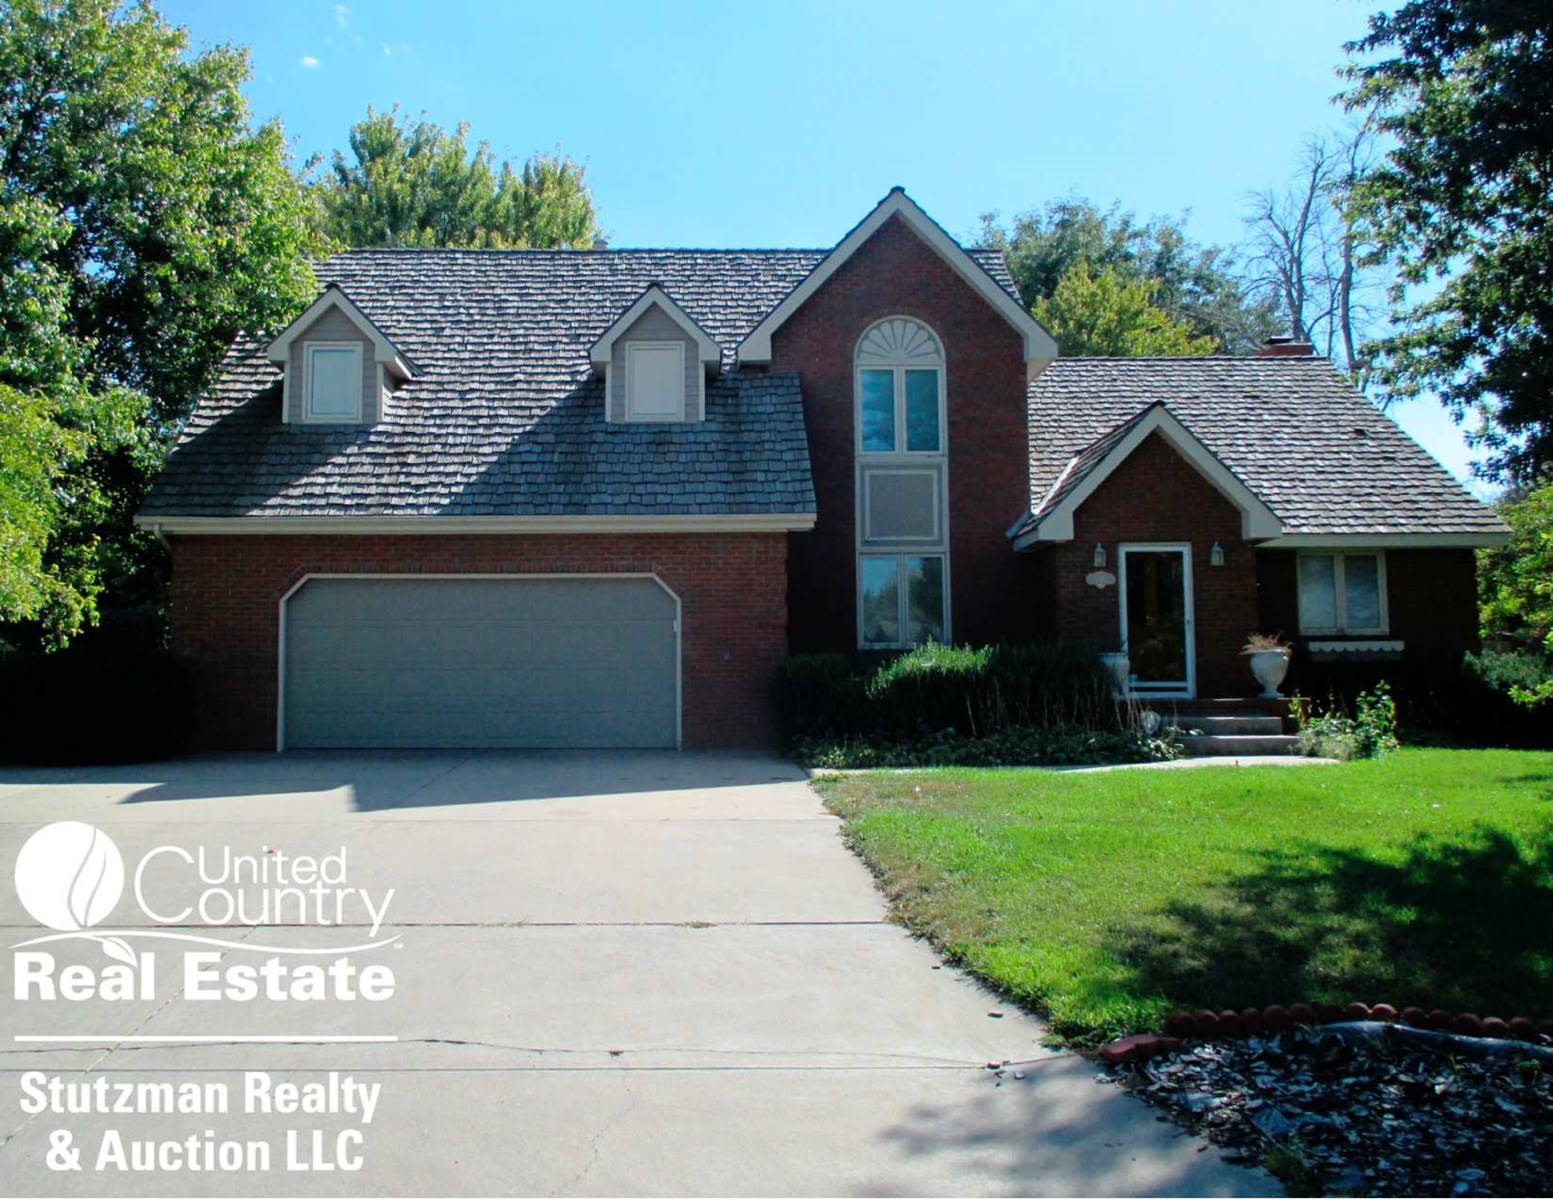 BEAUTIFUL BRICK HOME IN DODGE CITY, KS - UNDER CONTRACT